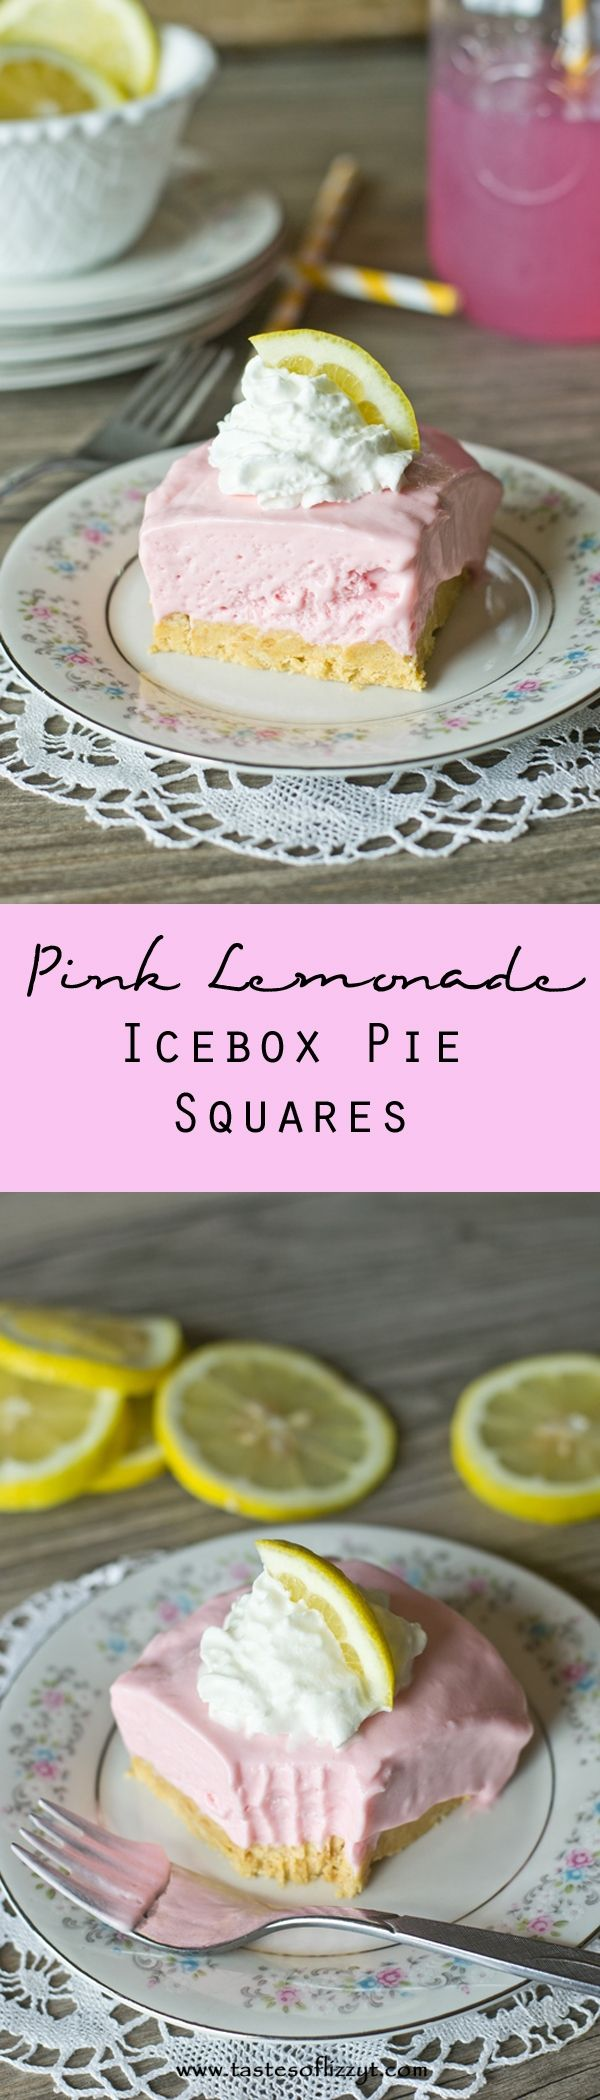 Pink Lemonade Icebox Pie Squares. This no-bake Pink Lemonade Icebox Pie Squares are cool, light and refreshing. Pinned over 1000 times!